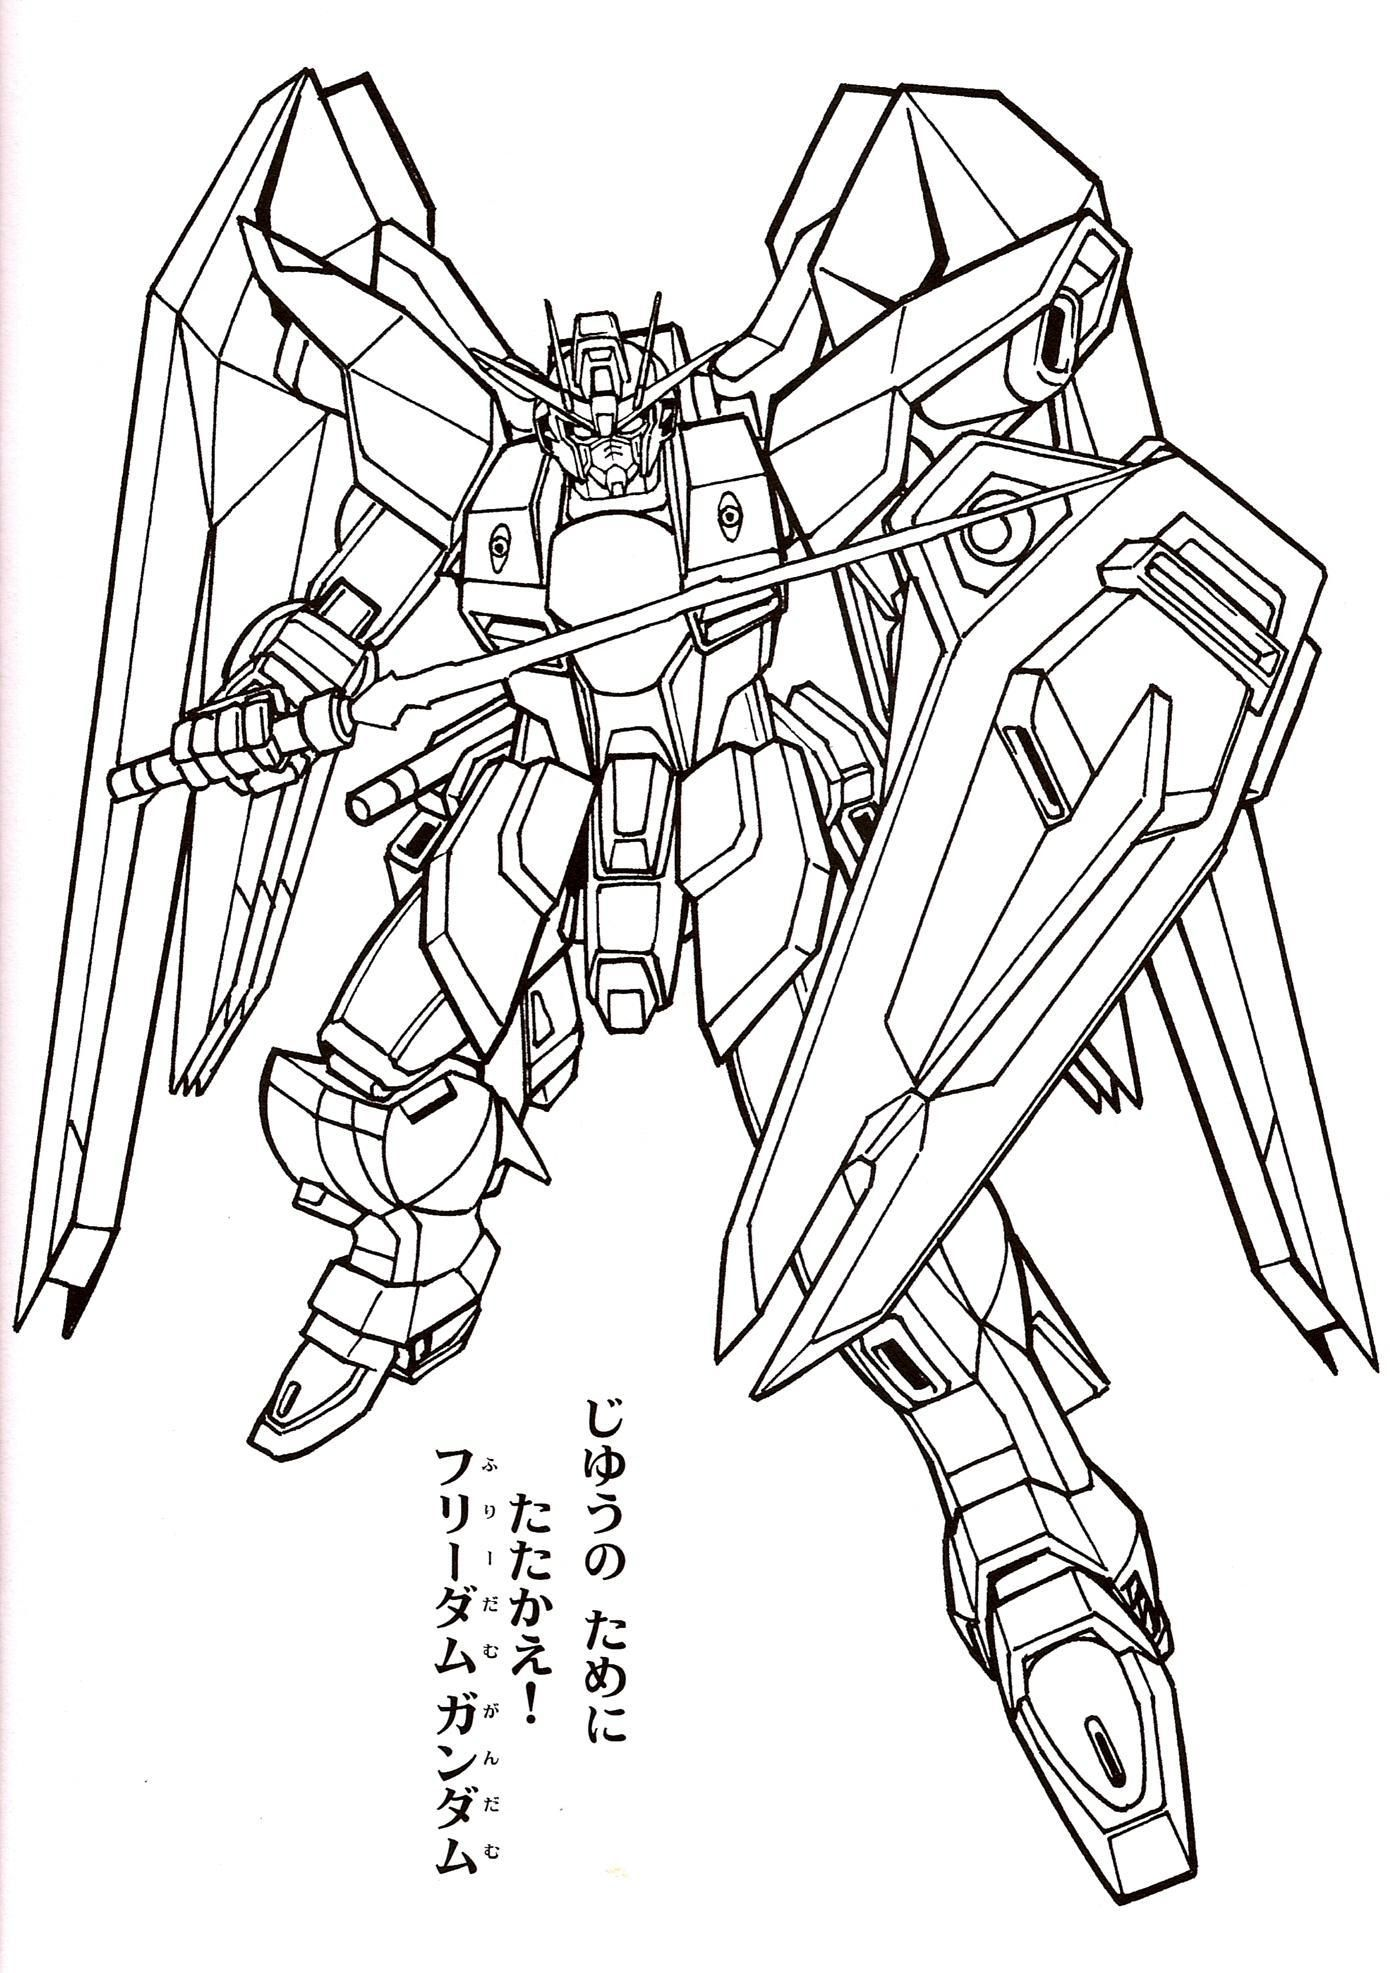 gundam coloring pages Free coloring pages of gundam | Gundam | Pinterest | Gundam  gundam coloring pages